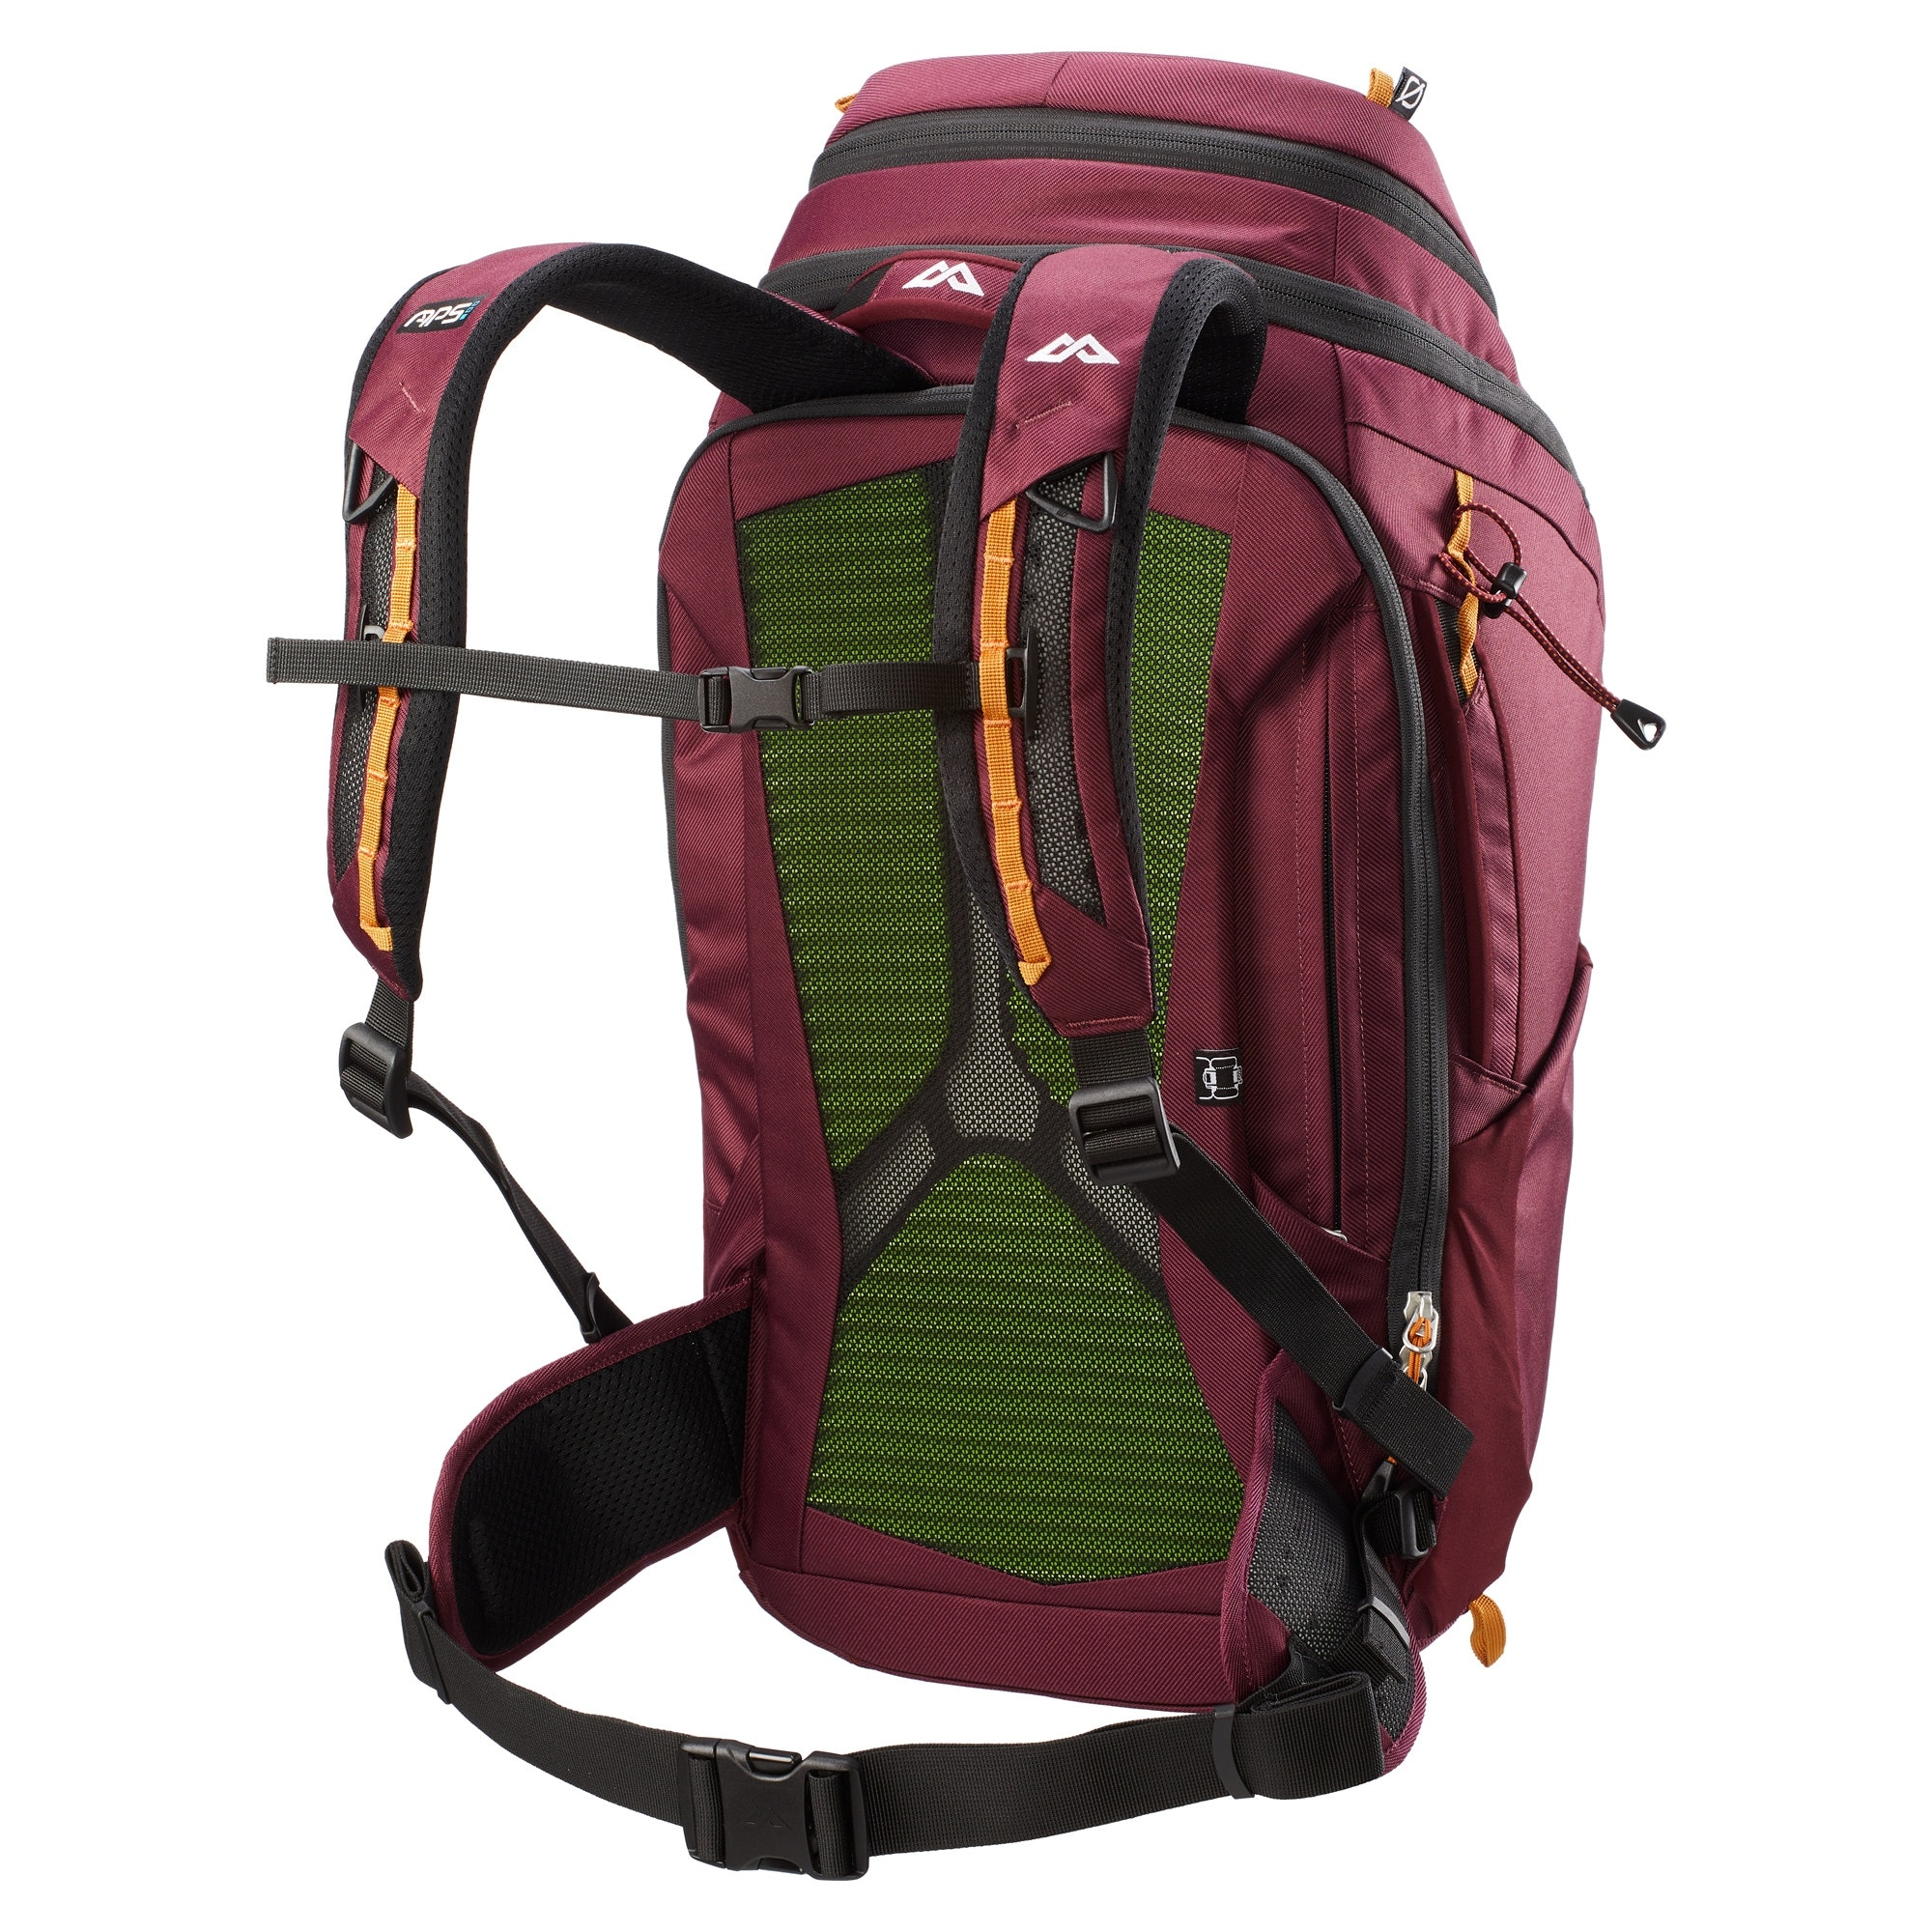 NEW-Kathmandu-Transfer-28L-Commuter-Bag-Laptop-Backpack-Rucksack-Travel-Pack-v3 thumbnail 28